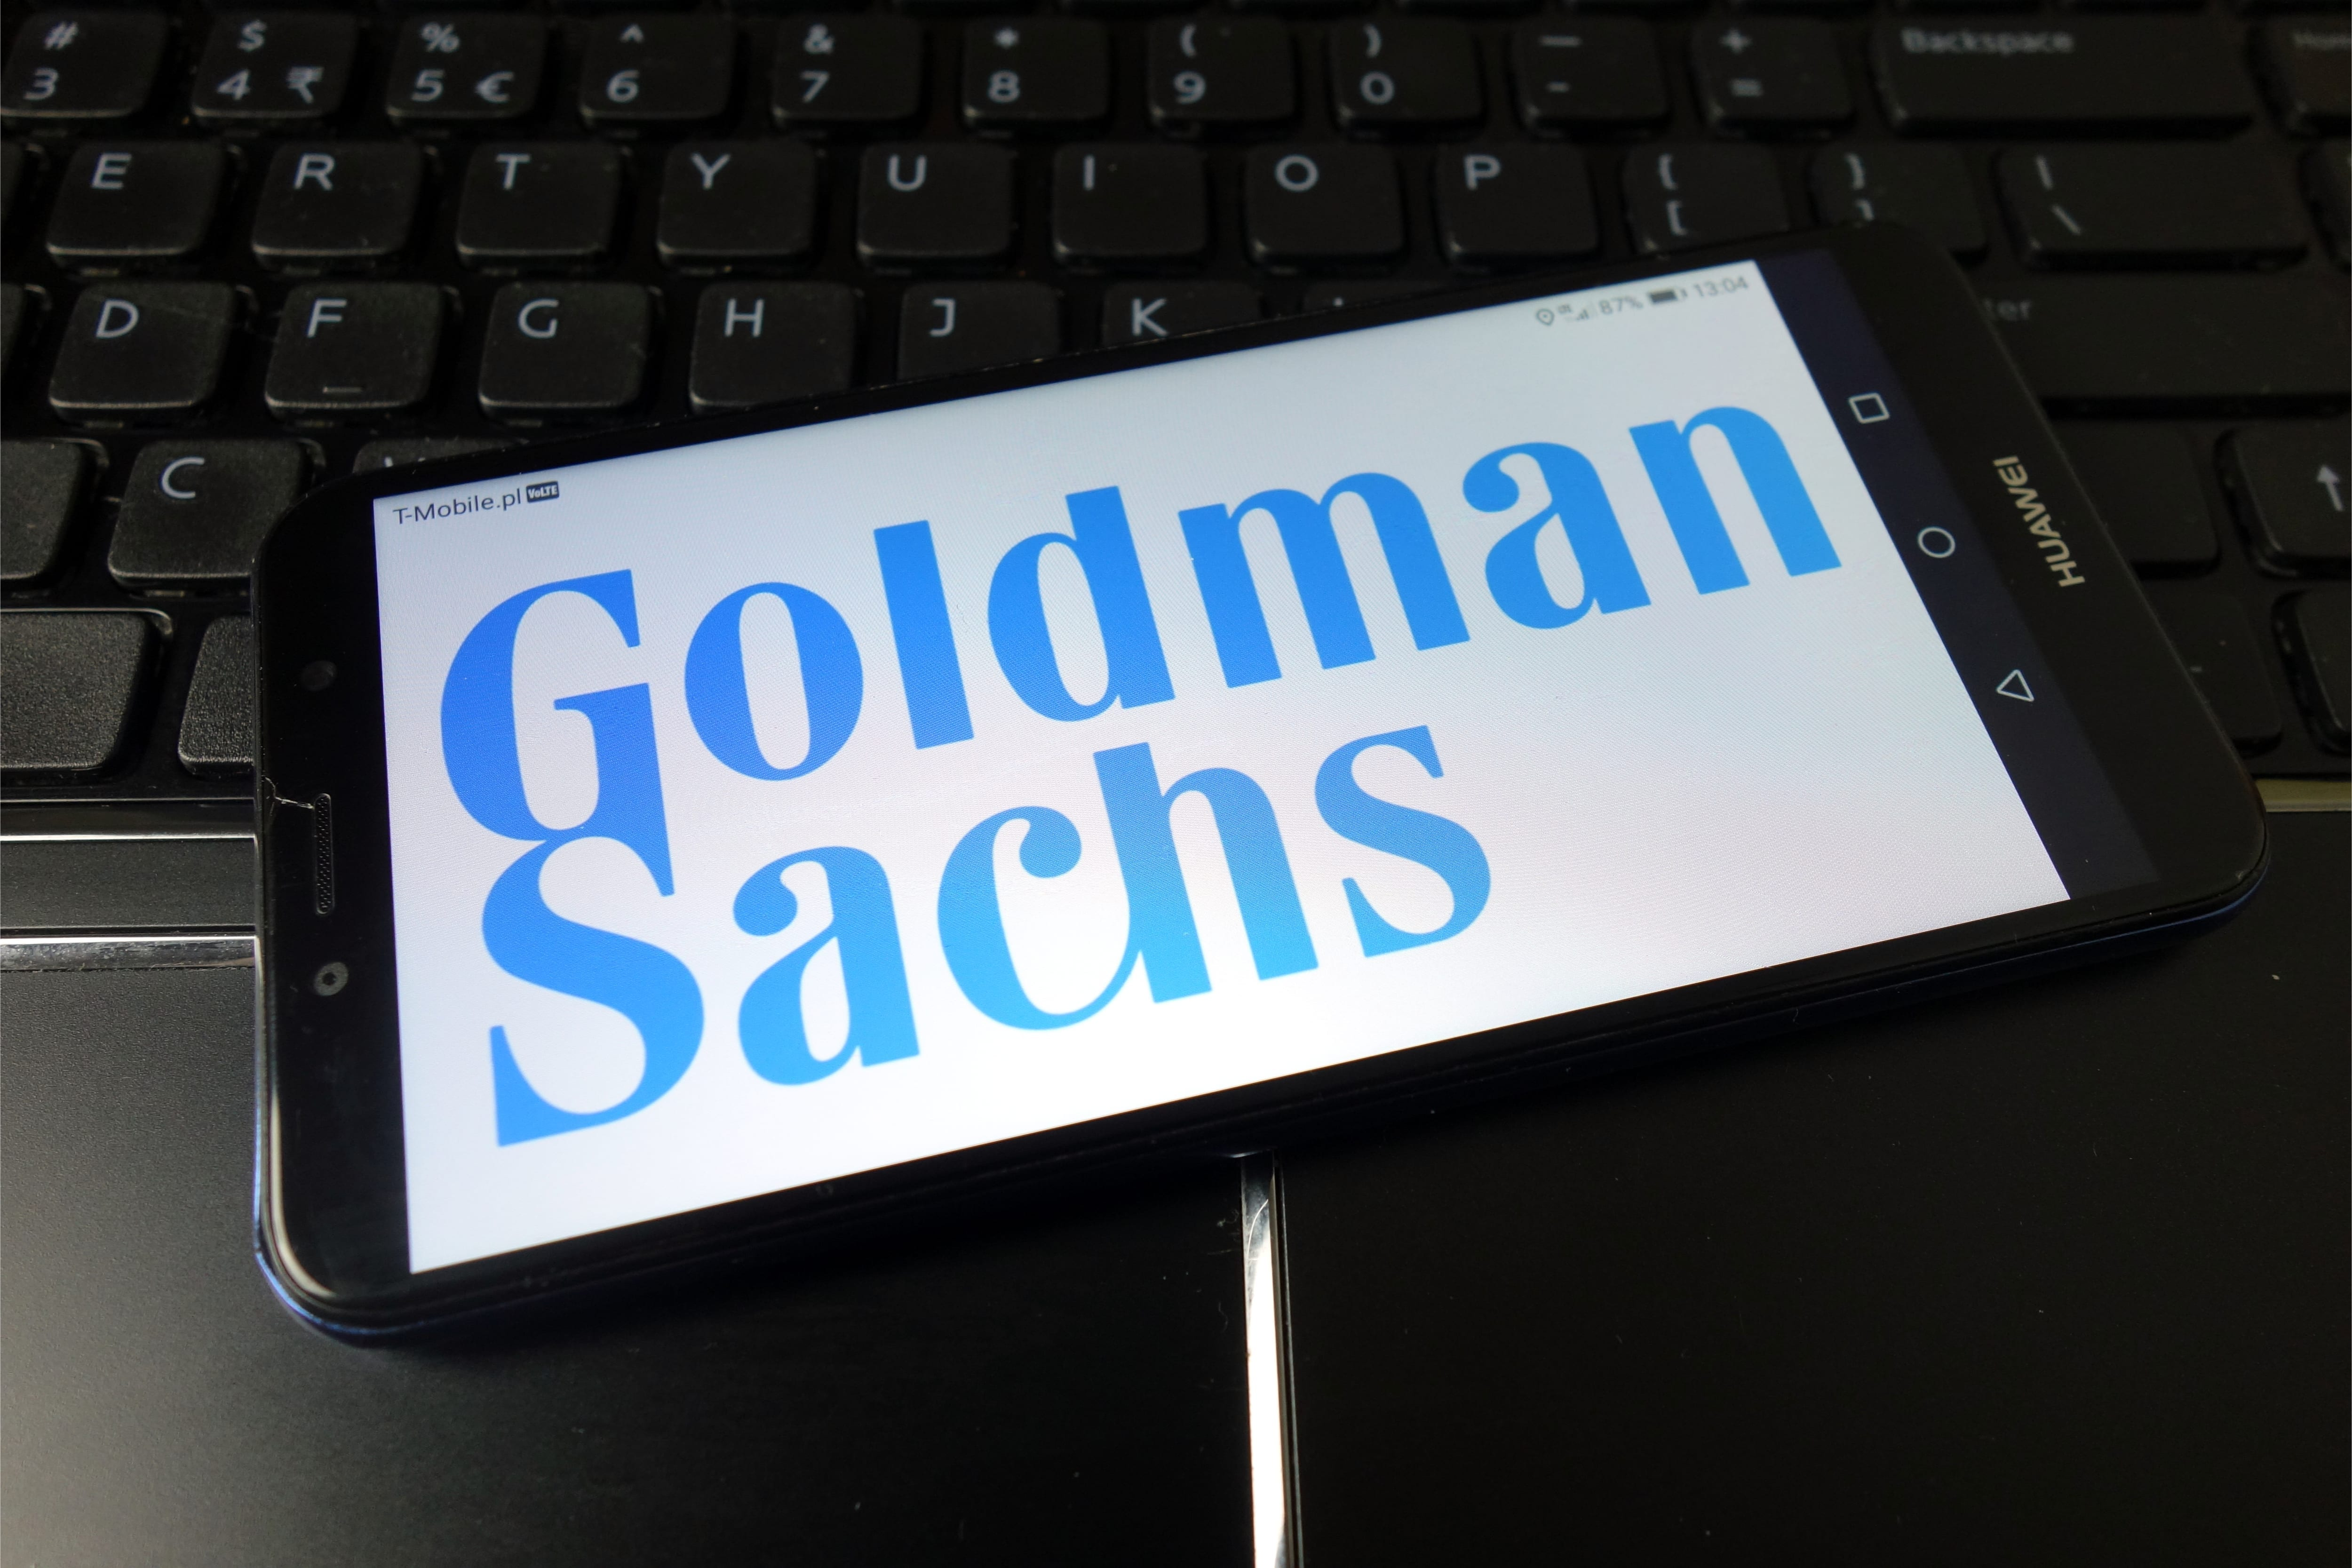 Goldman Sachs will partner with SAP on cross border payments